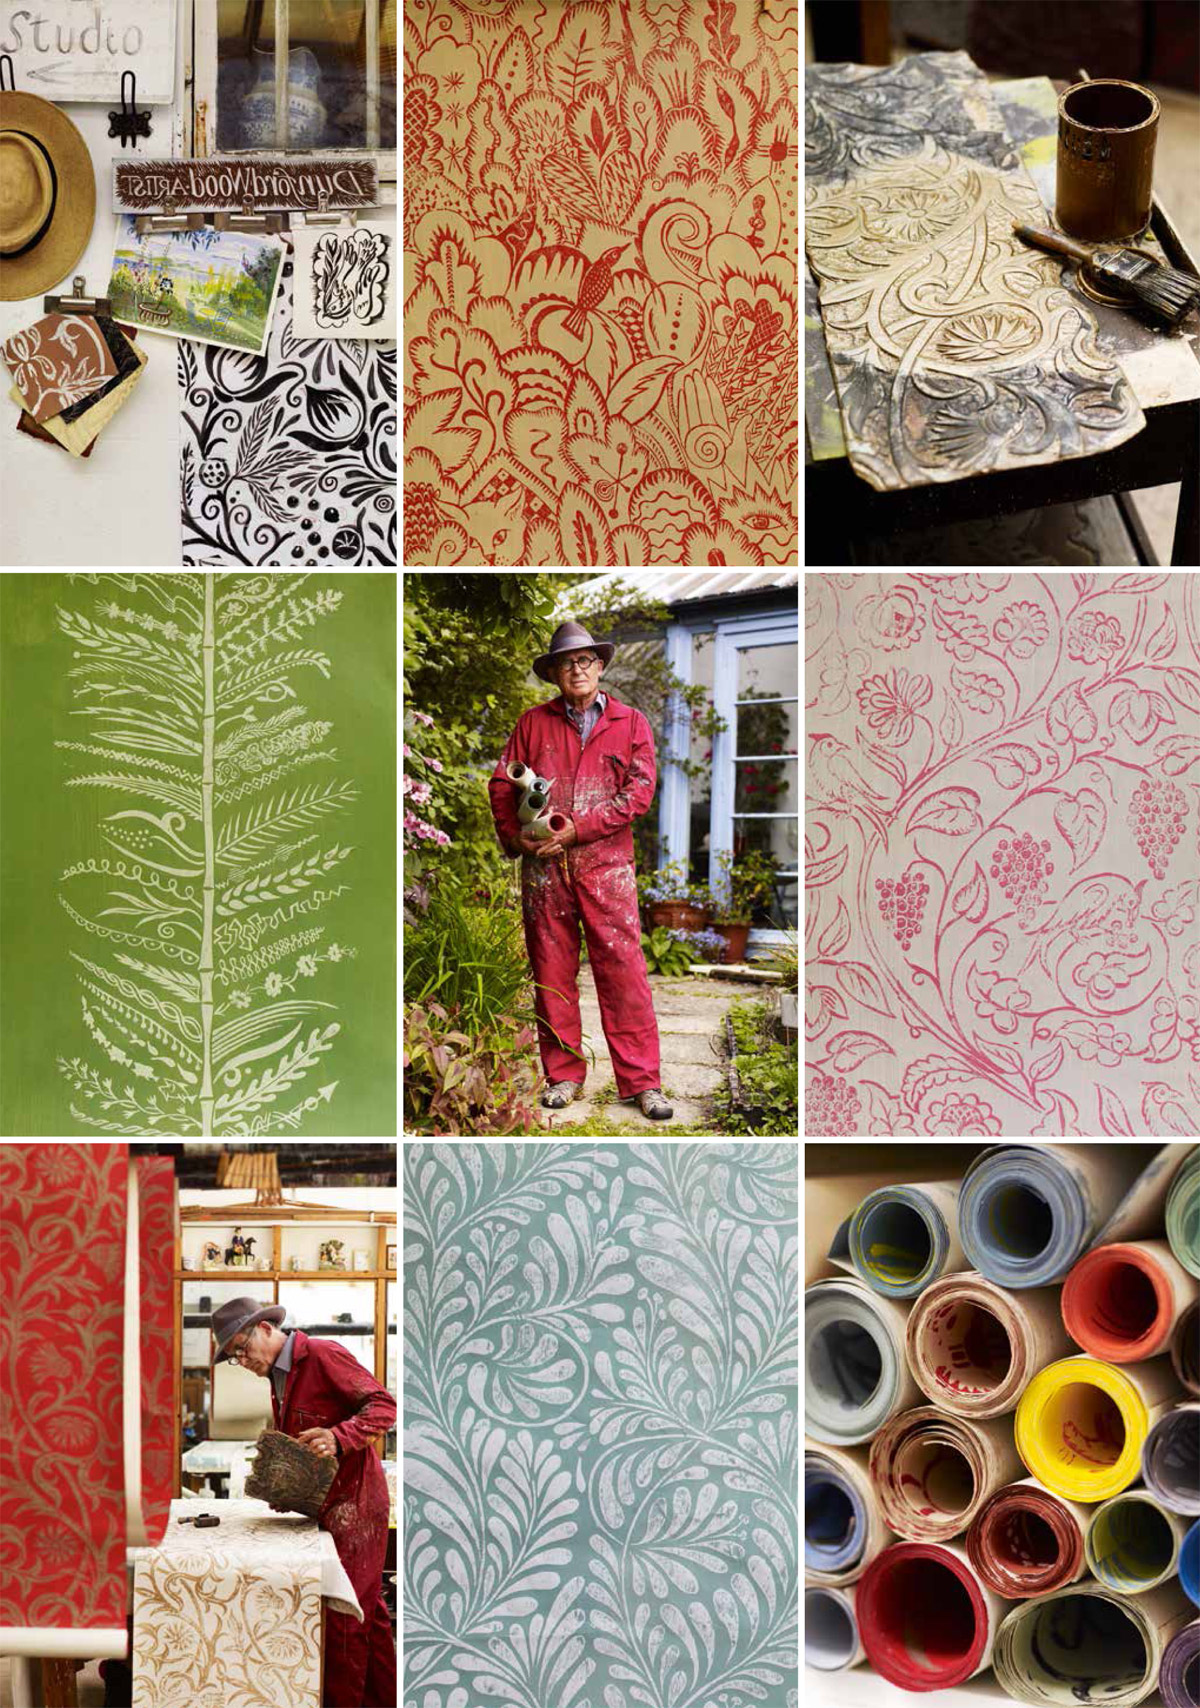 Hugh Dunford Wood Handmade Wallpaper featured in Gardens Illustrated